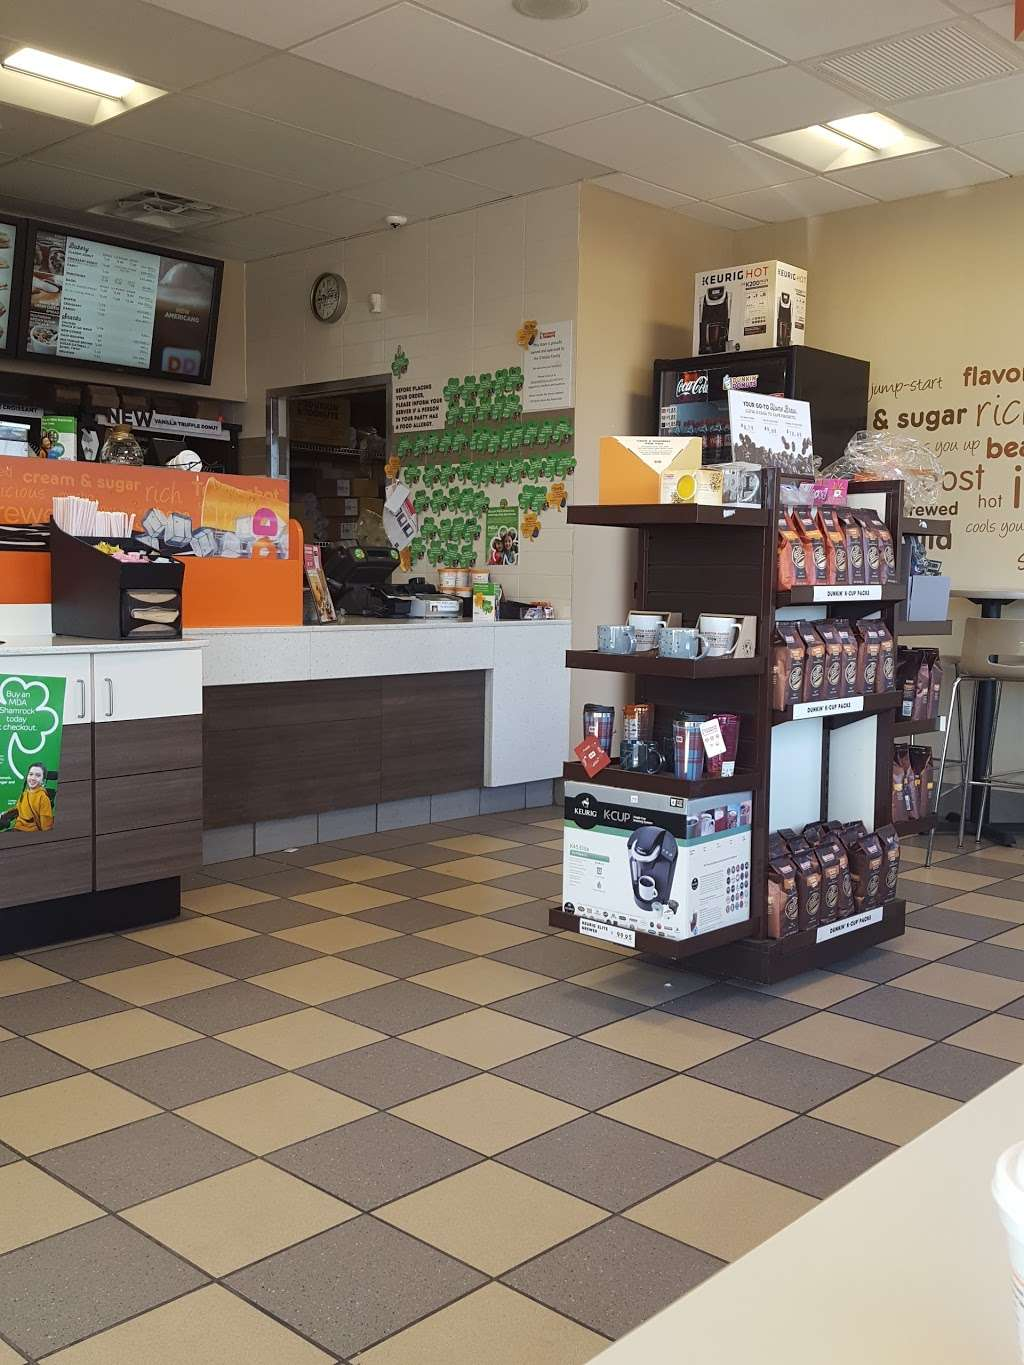 Dunkin Donuts - cafe  | Photo 2 of 10 | Address: 555 N Shore Rd, Revere, MA 02151, USA | Phone: (781) 485-5900